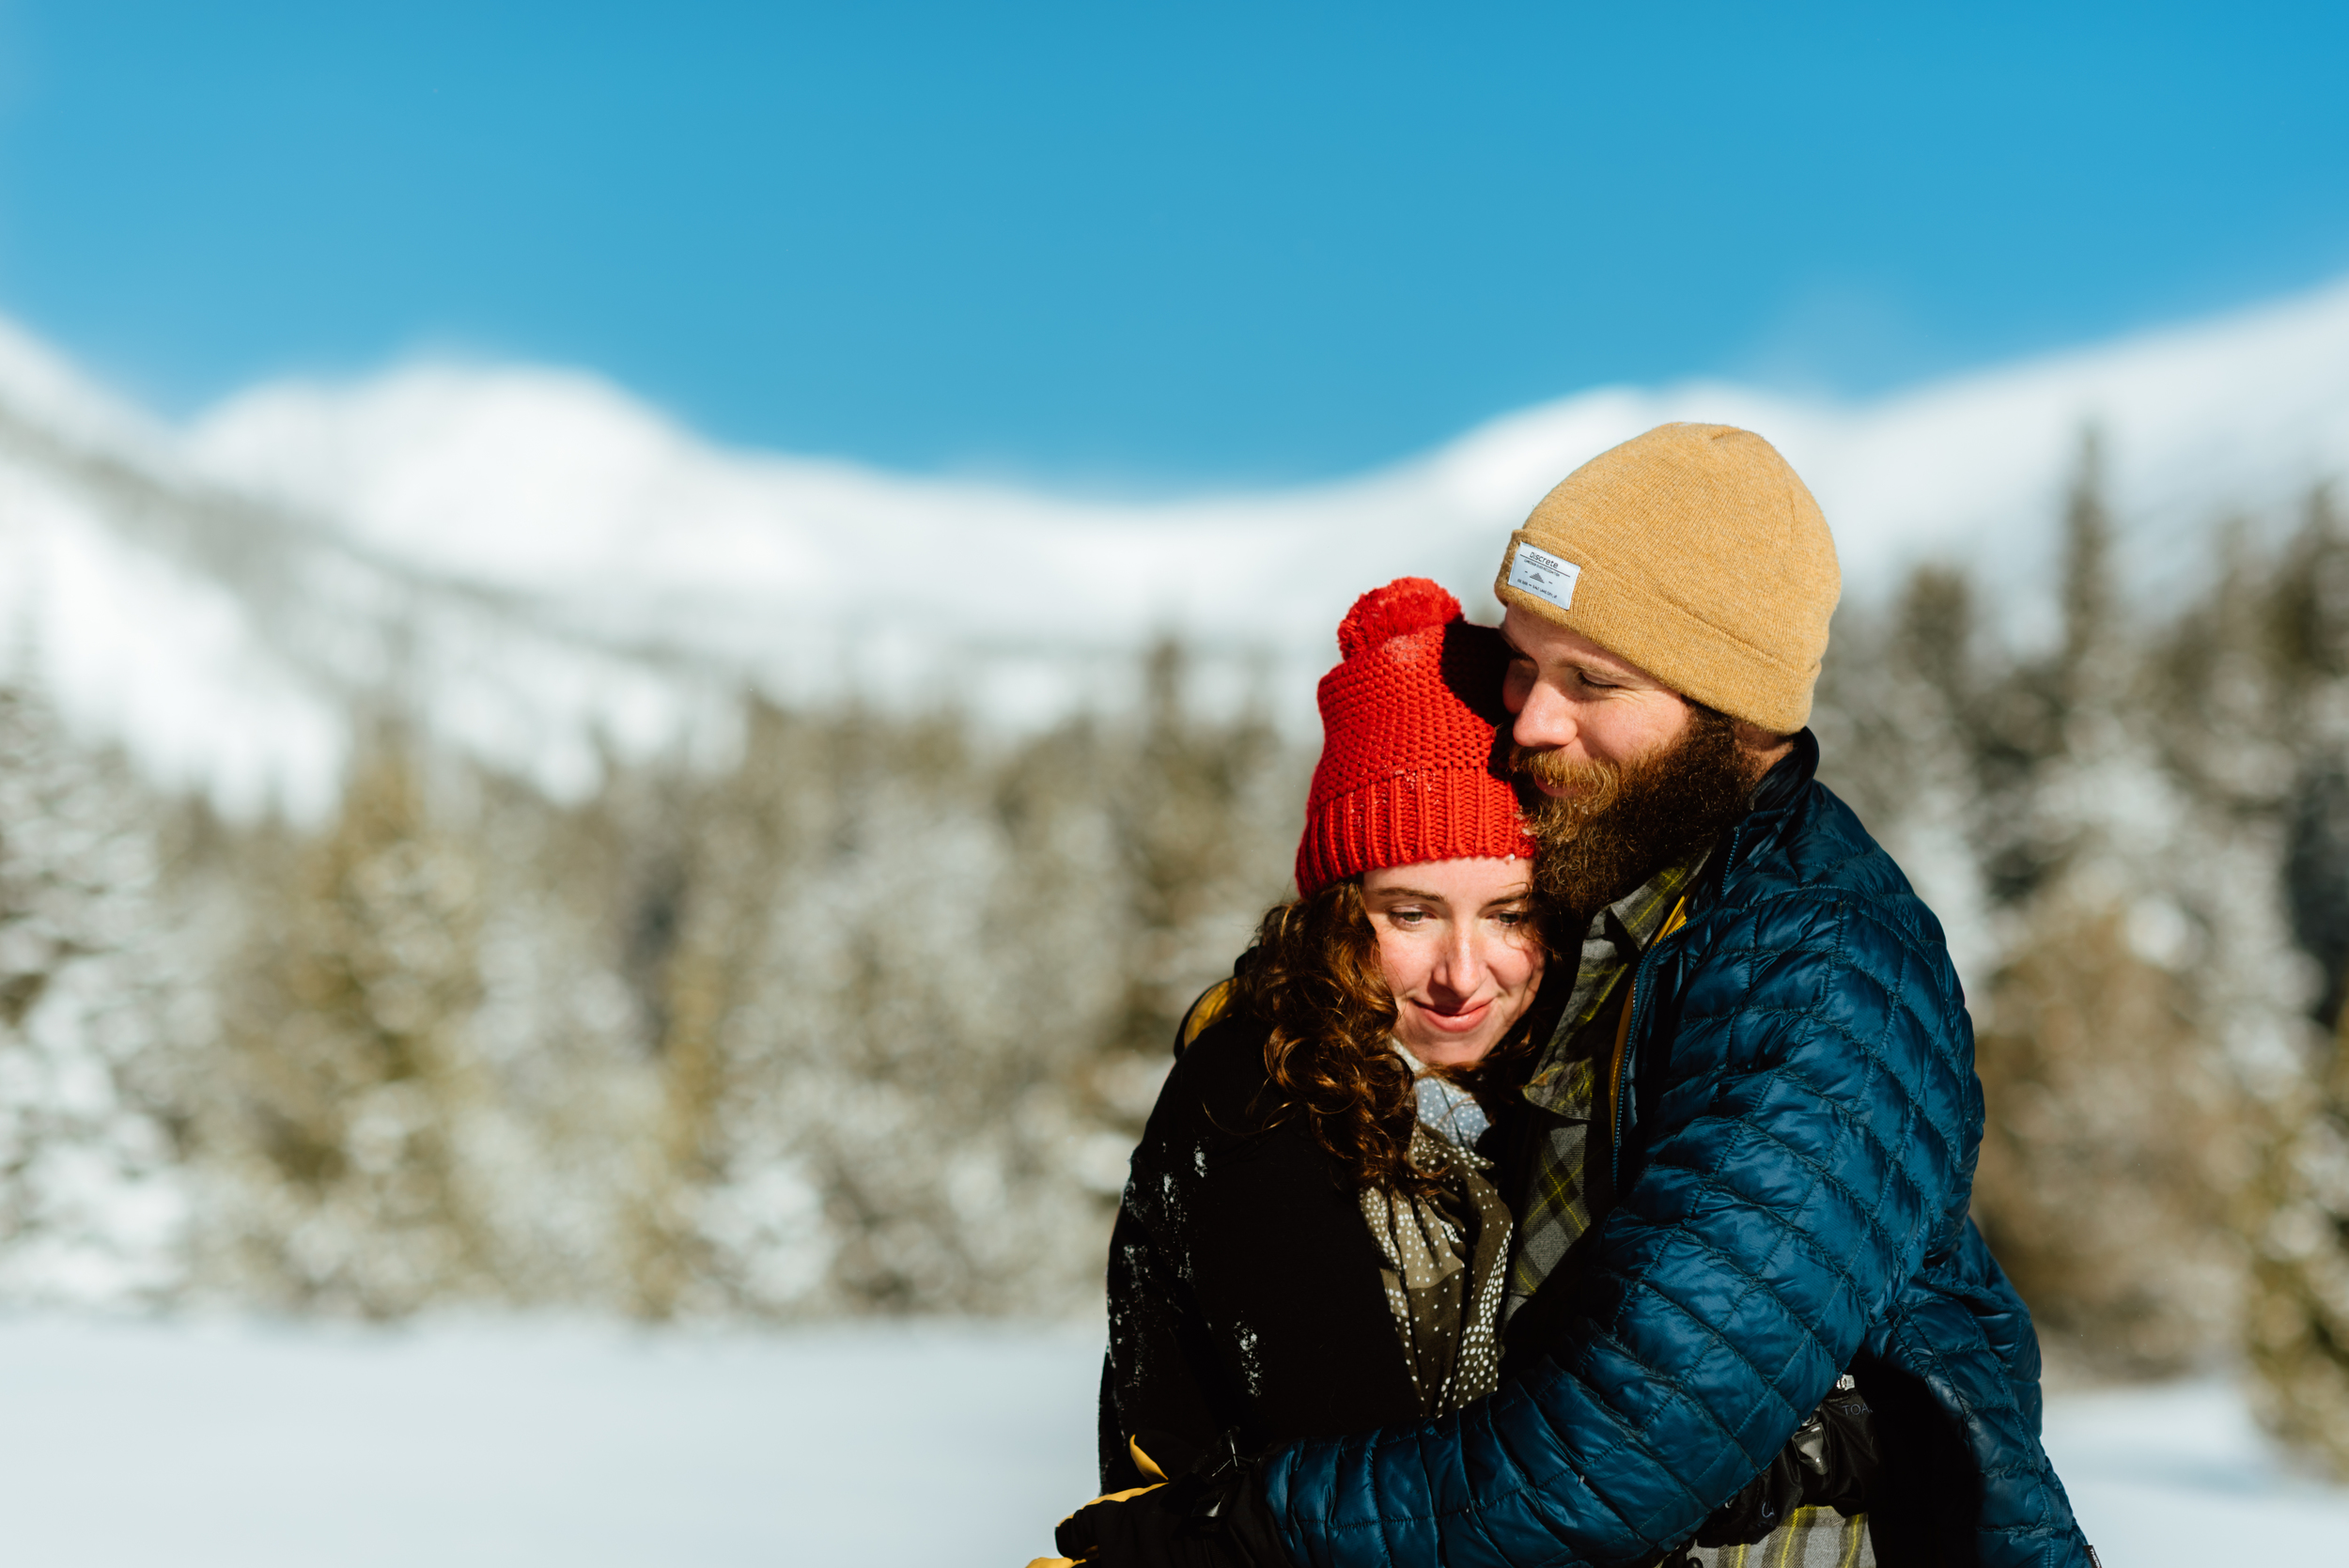 These snowy mountain engagement photos are insanely GORGEOUS! My boyfriend and I absolutely love the outdoors and I would totally want to do something adventurous for our engagement shoot like snowshoeing through Lost Lake in the winter!| Colorado engagement photos by intimate engagement photographer, Maddie Mae.